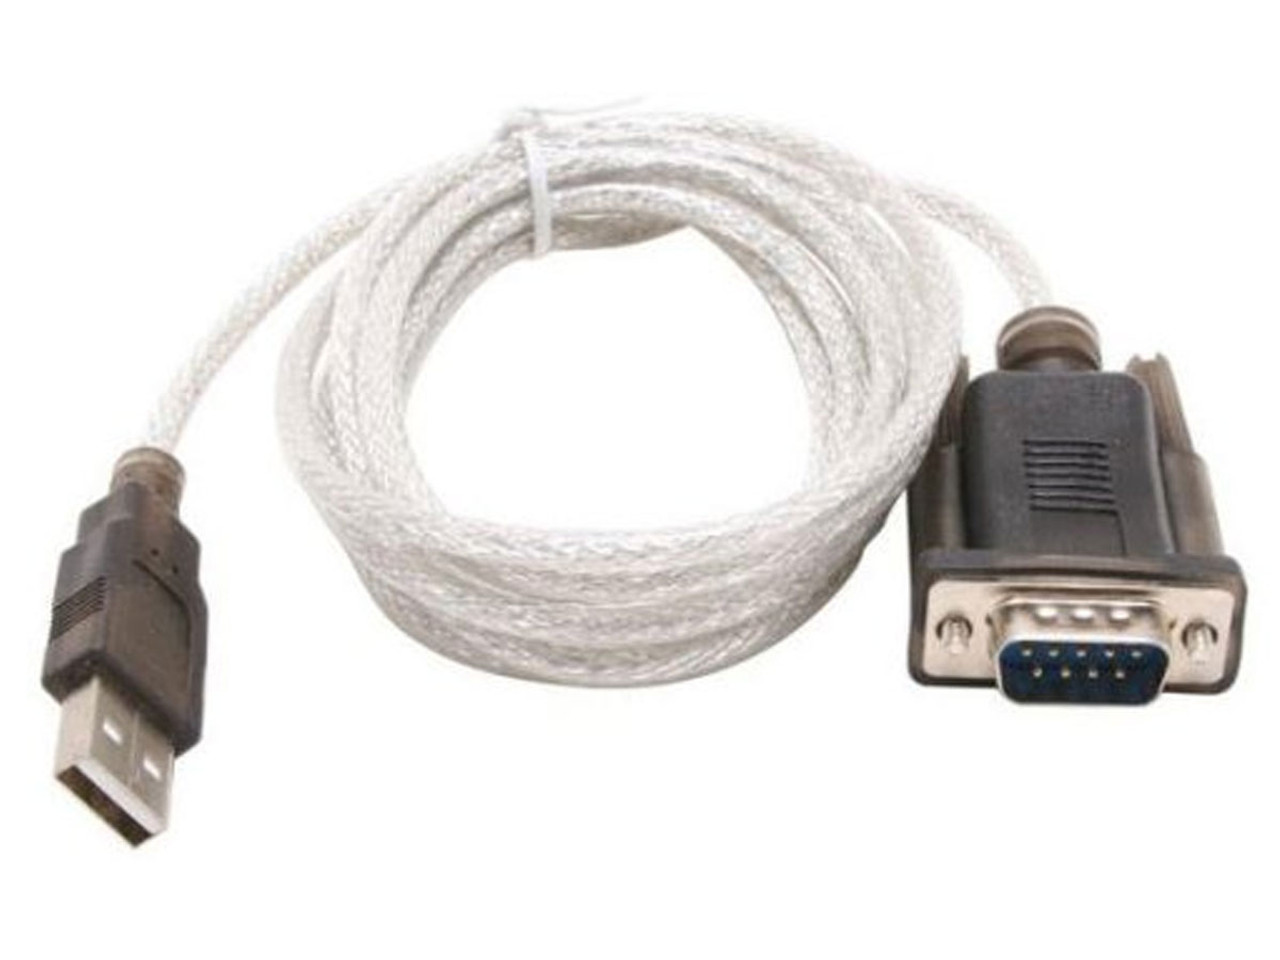 USB to Serial Adapter, 6 foot